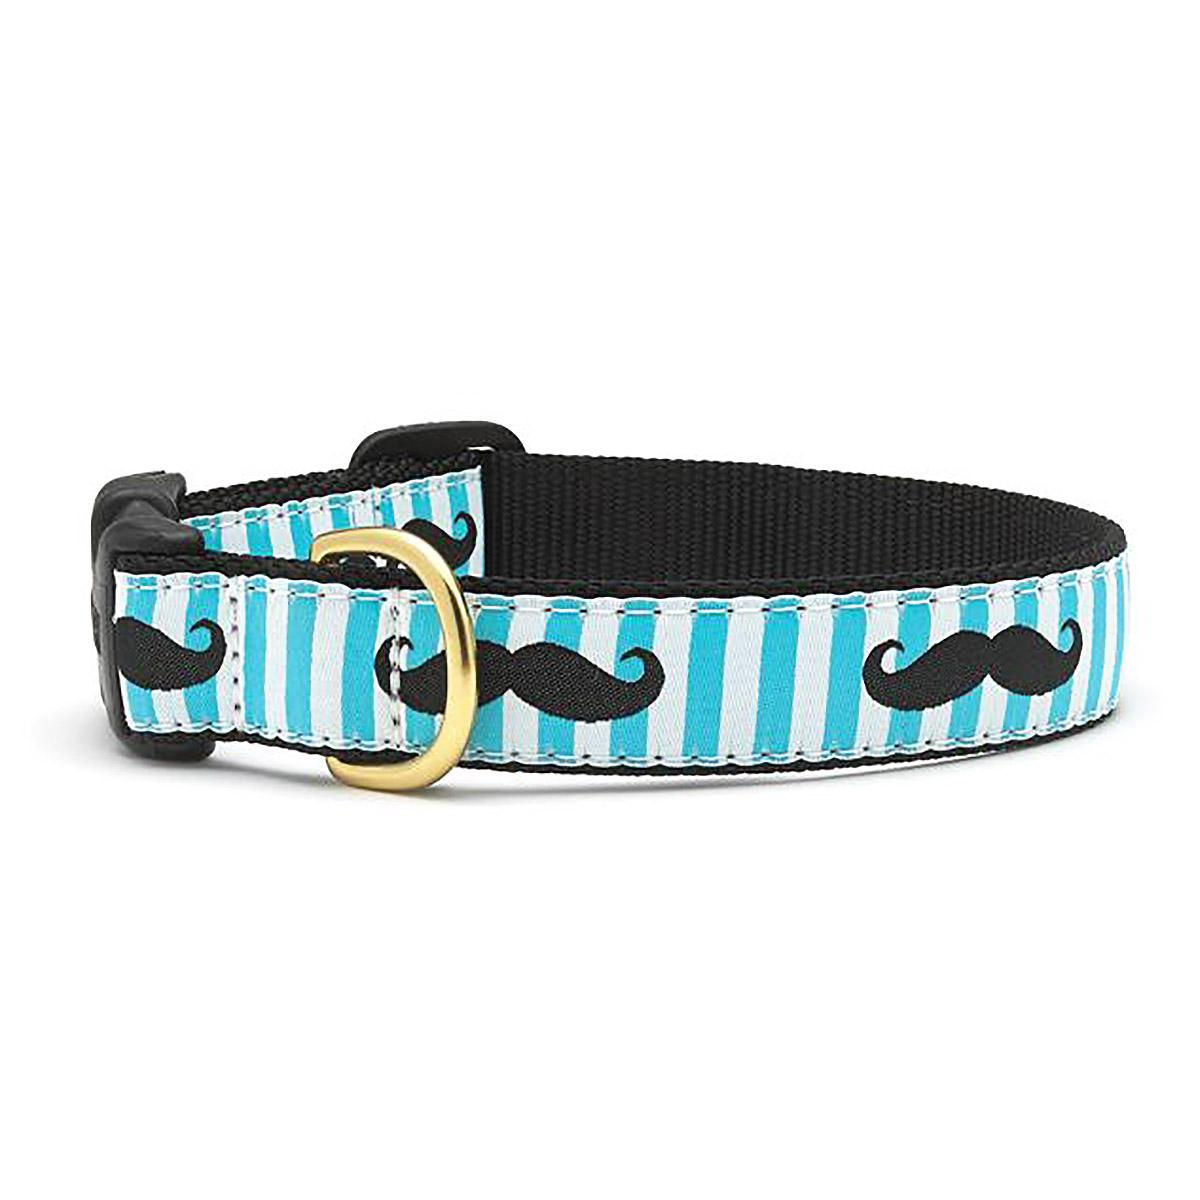 Mustache Dog Collar by Up Country